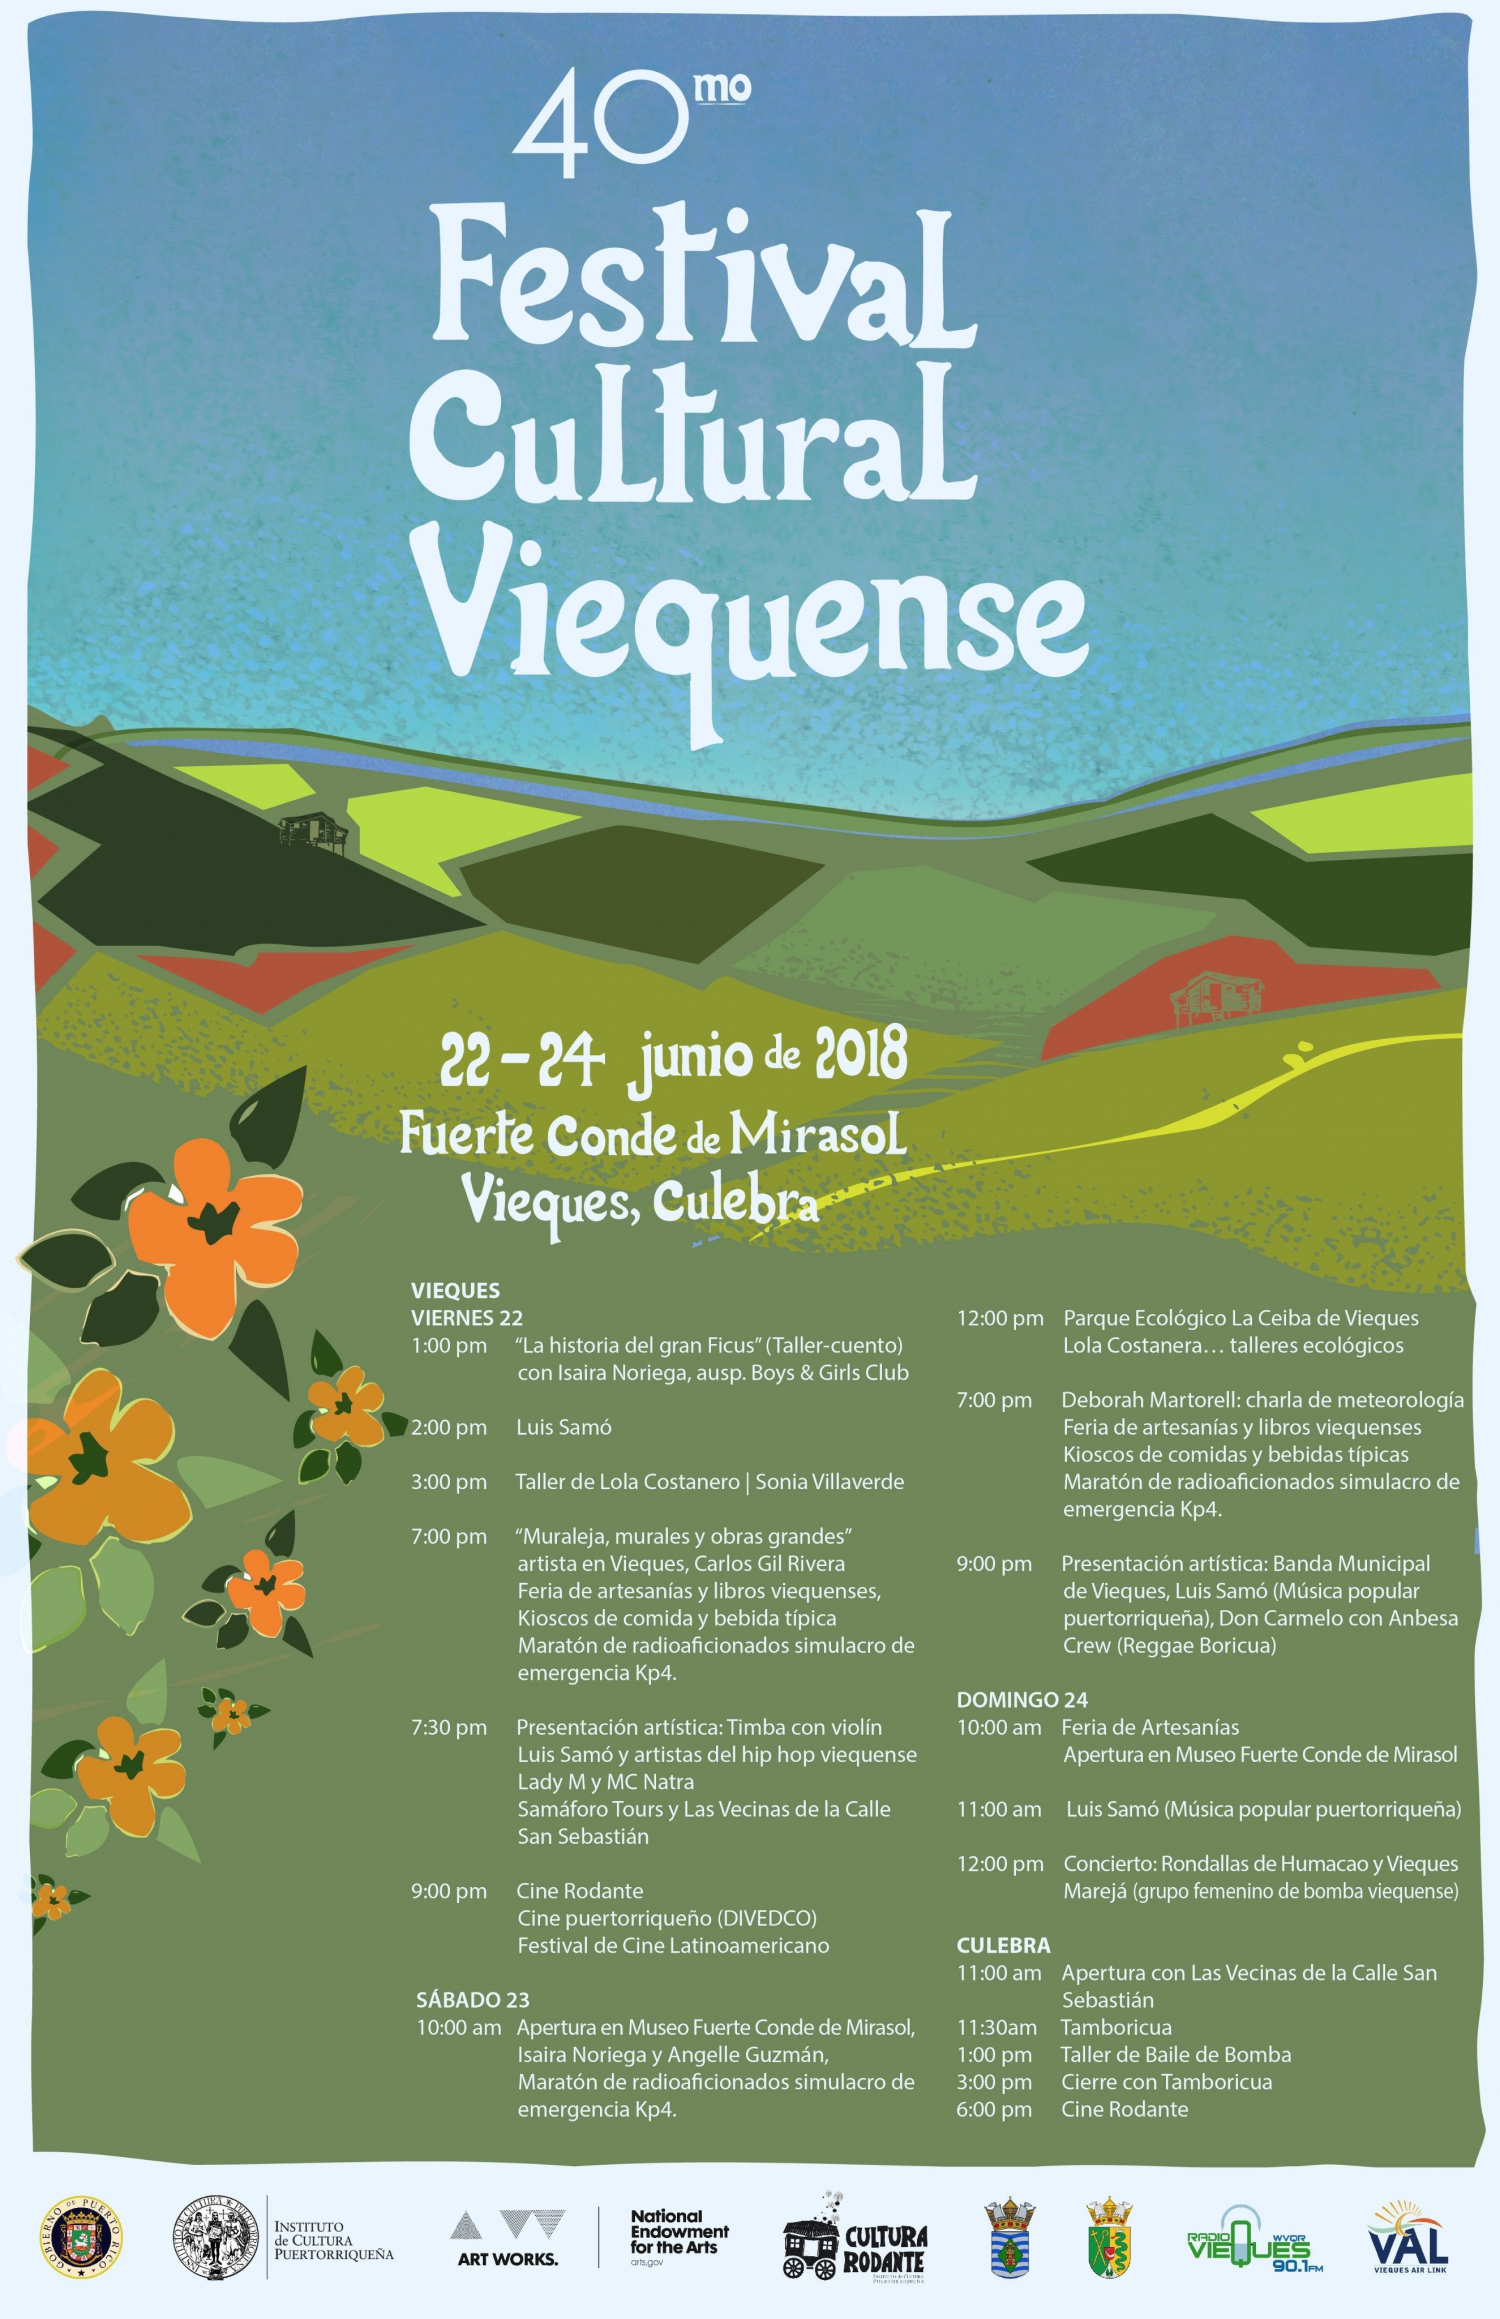 vieques culture festival activities